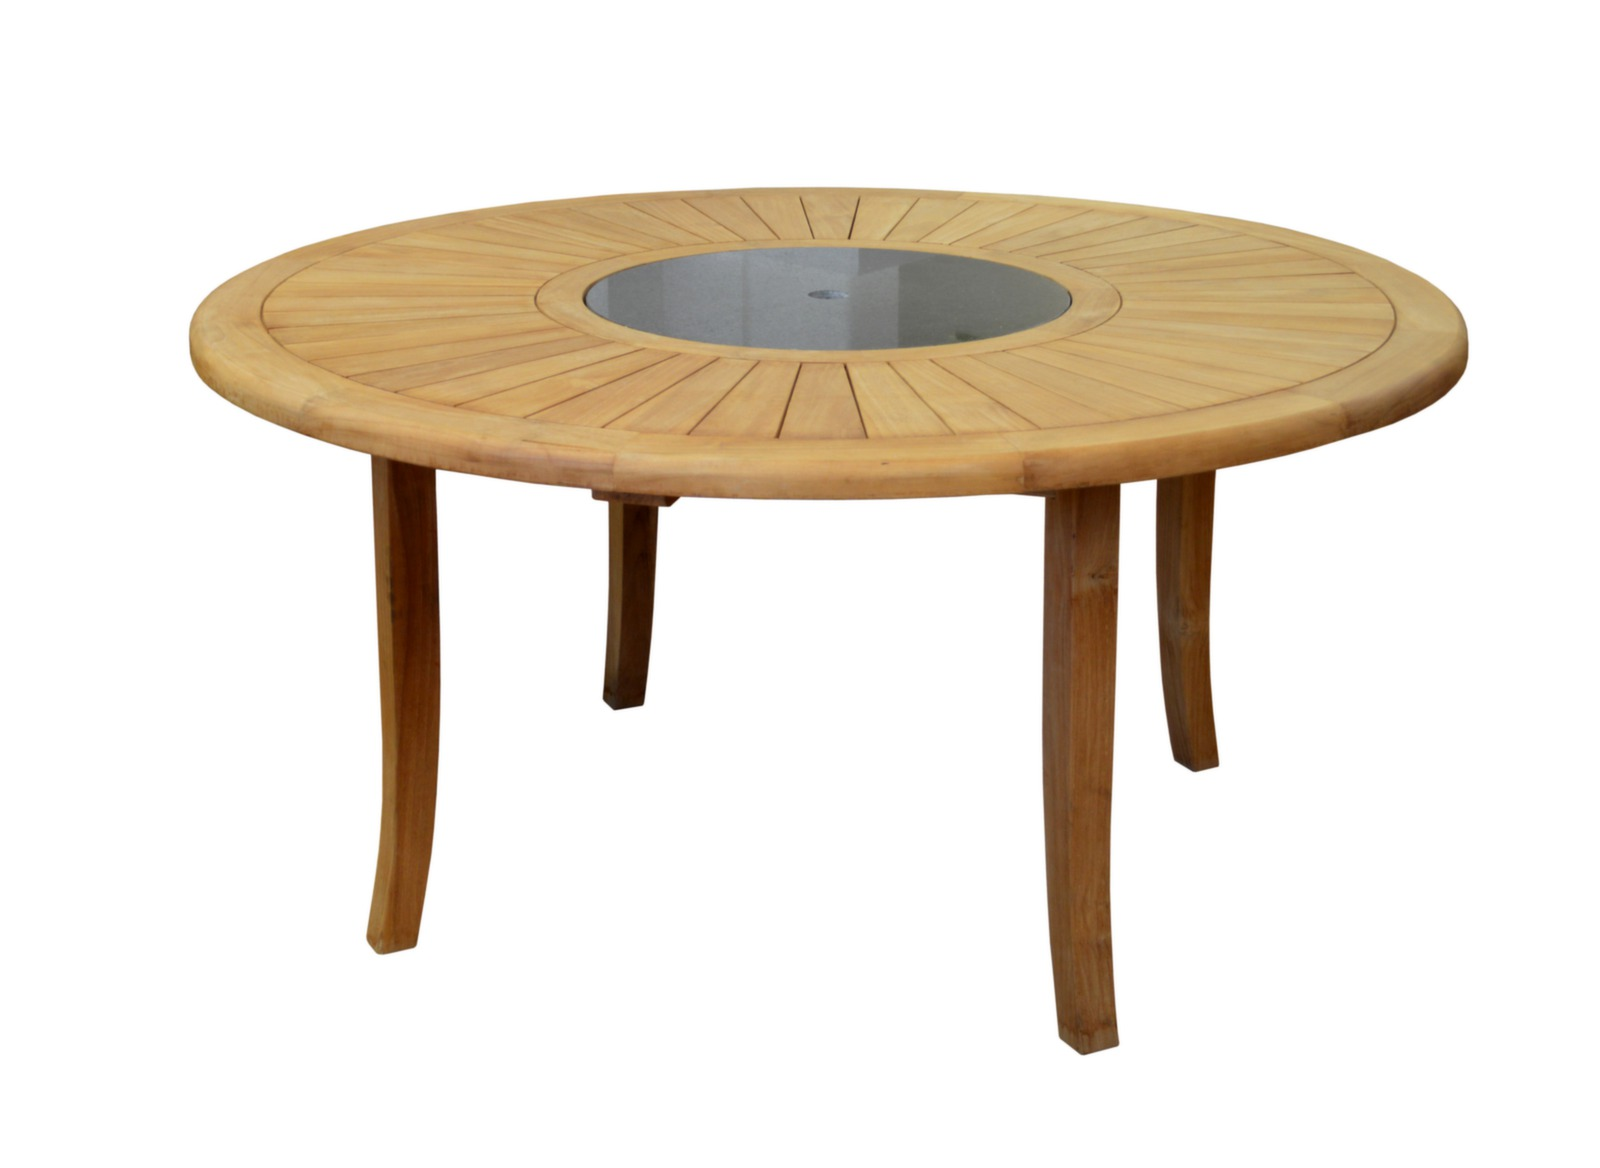 Beautiful table de jardin ronde en bois avec plateau for Table jardin ronde